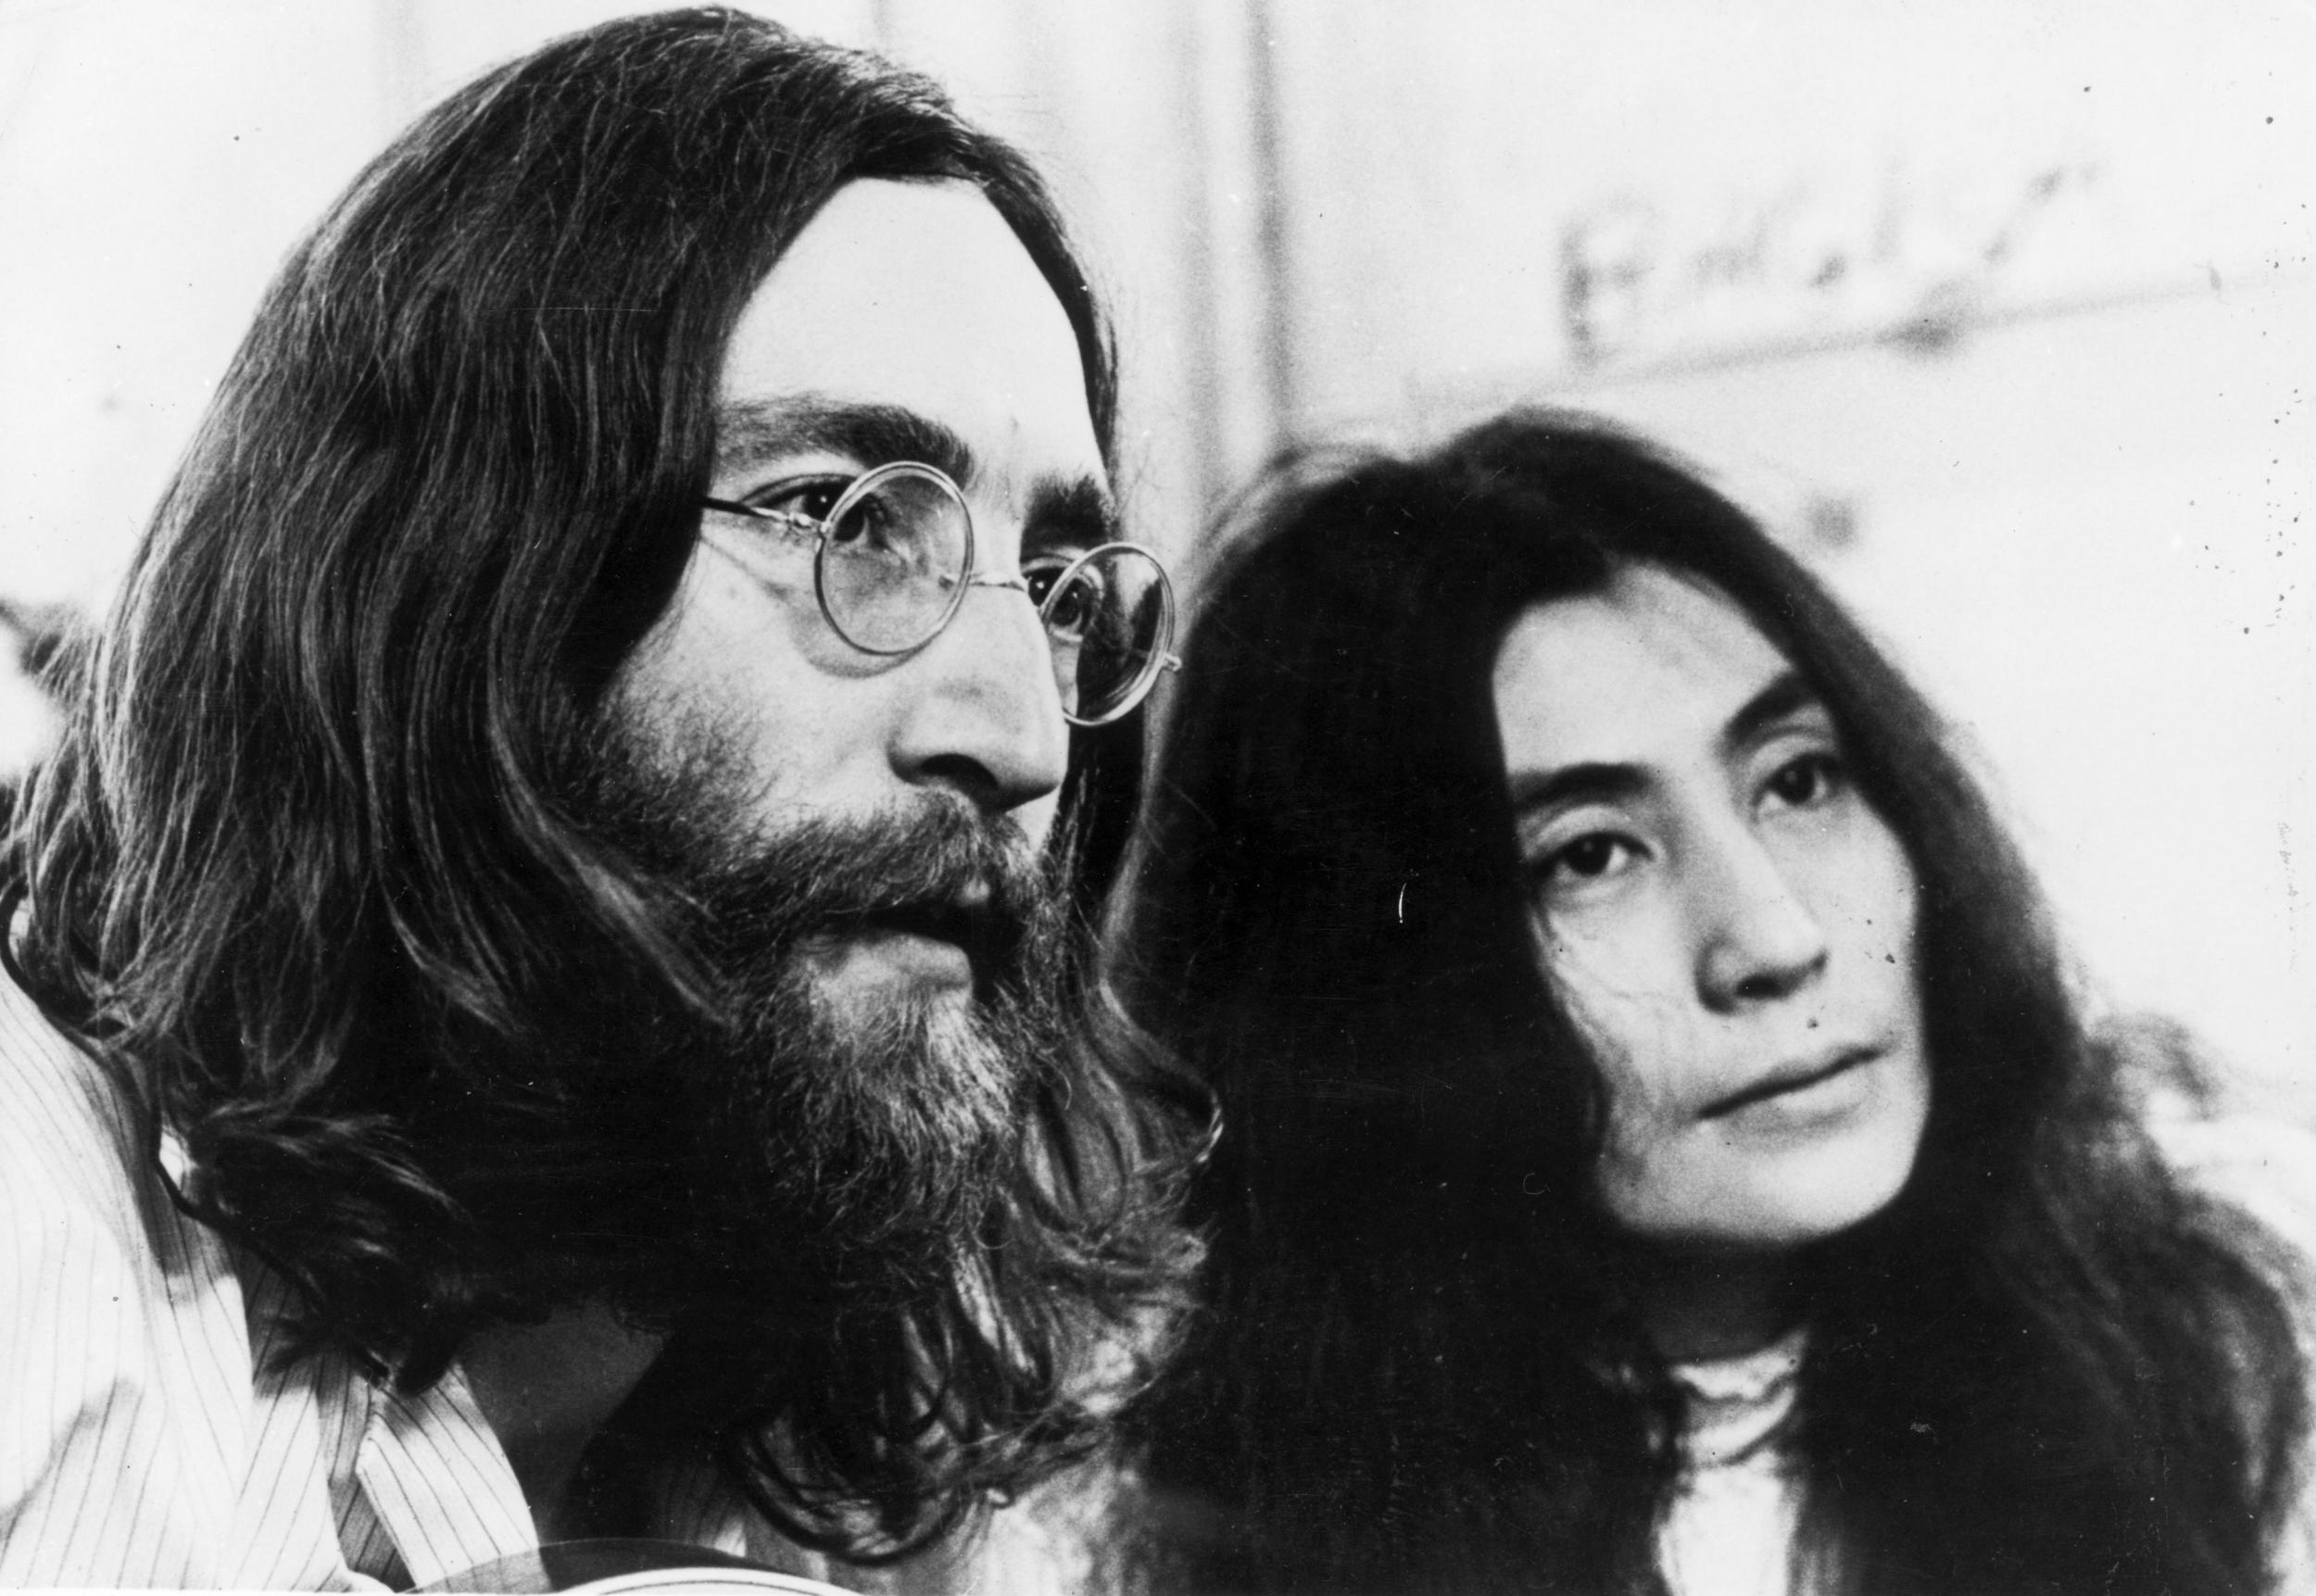 john lennon s stolen diaries recovered in berlin the independent